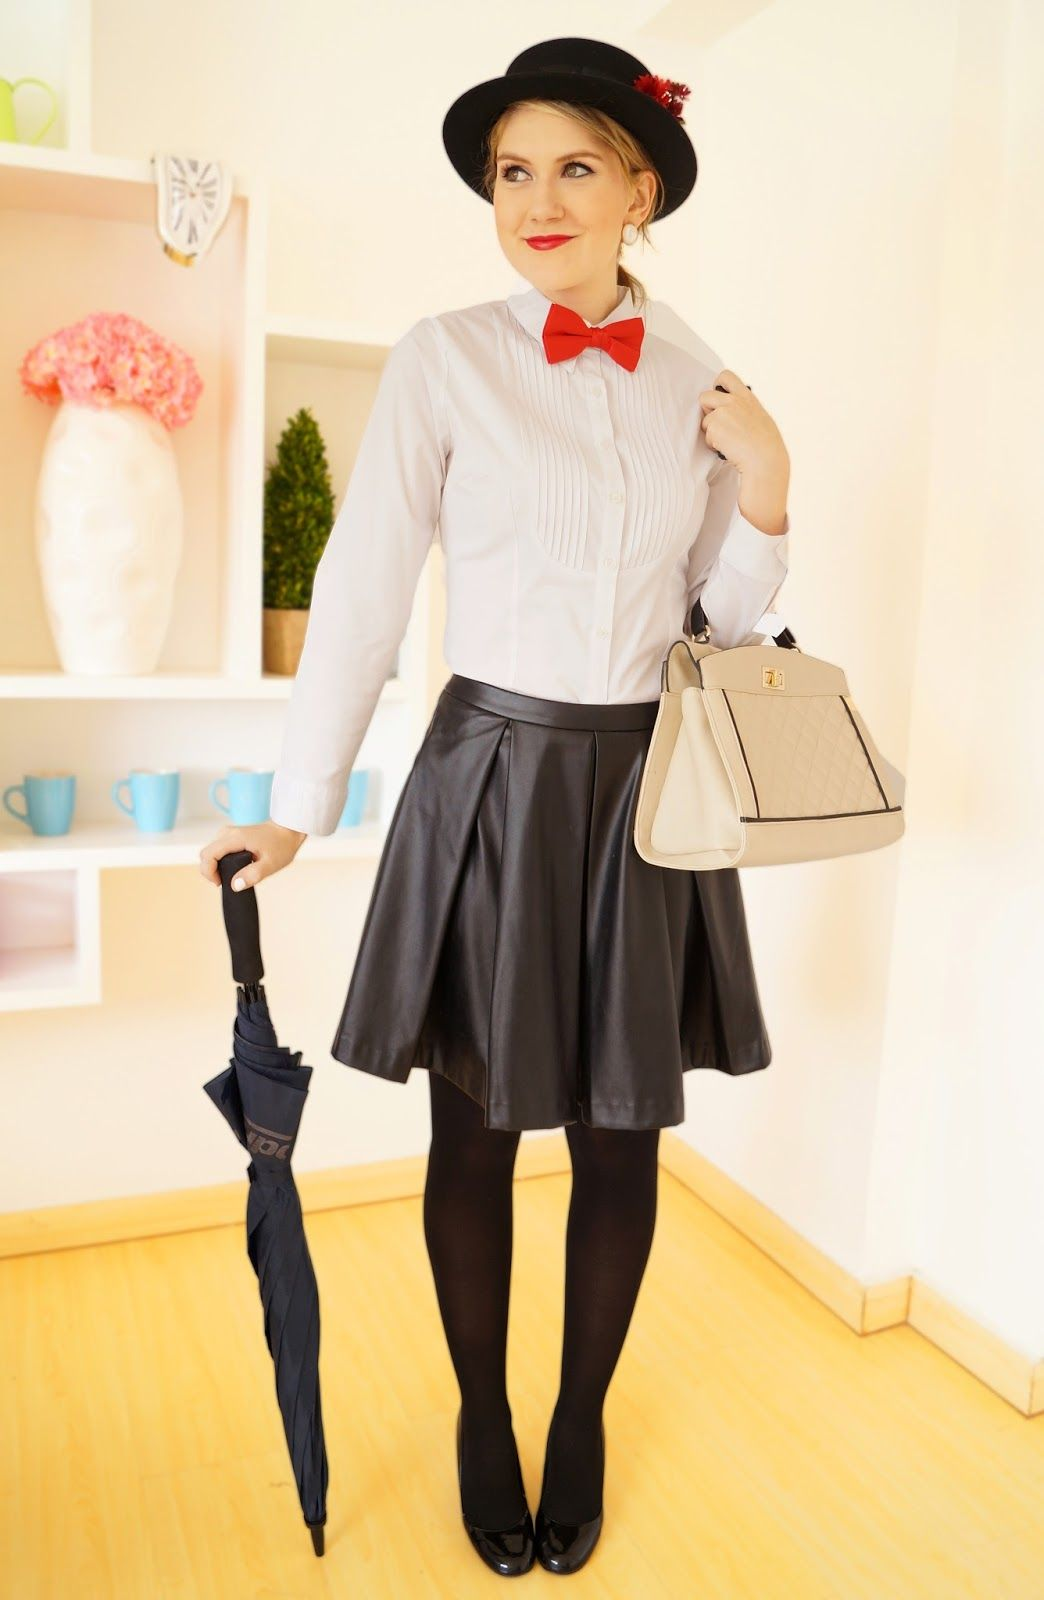 How to Mary Poppins Costume Easy adult halloween